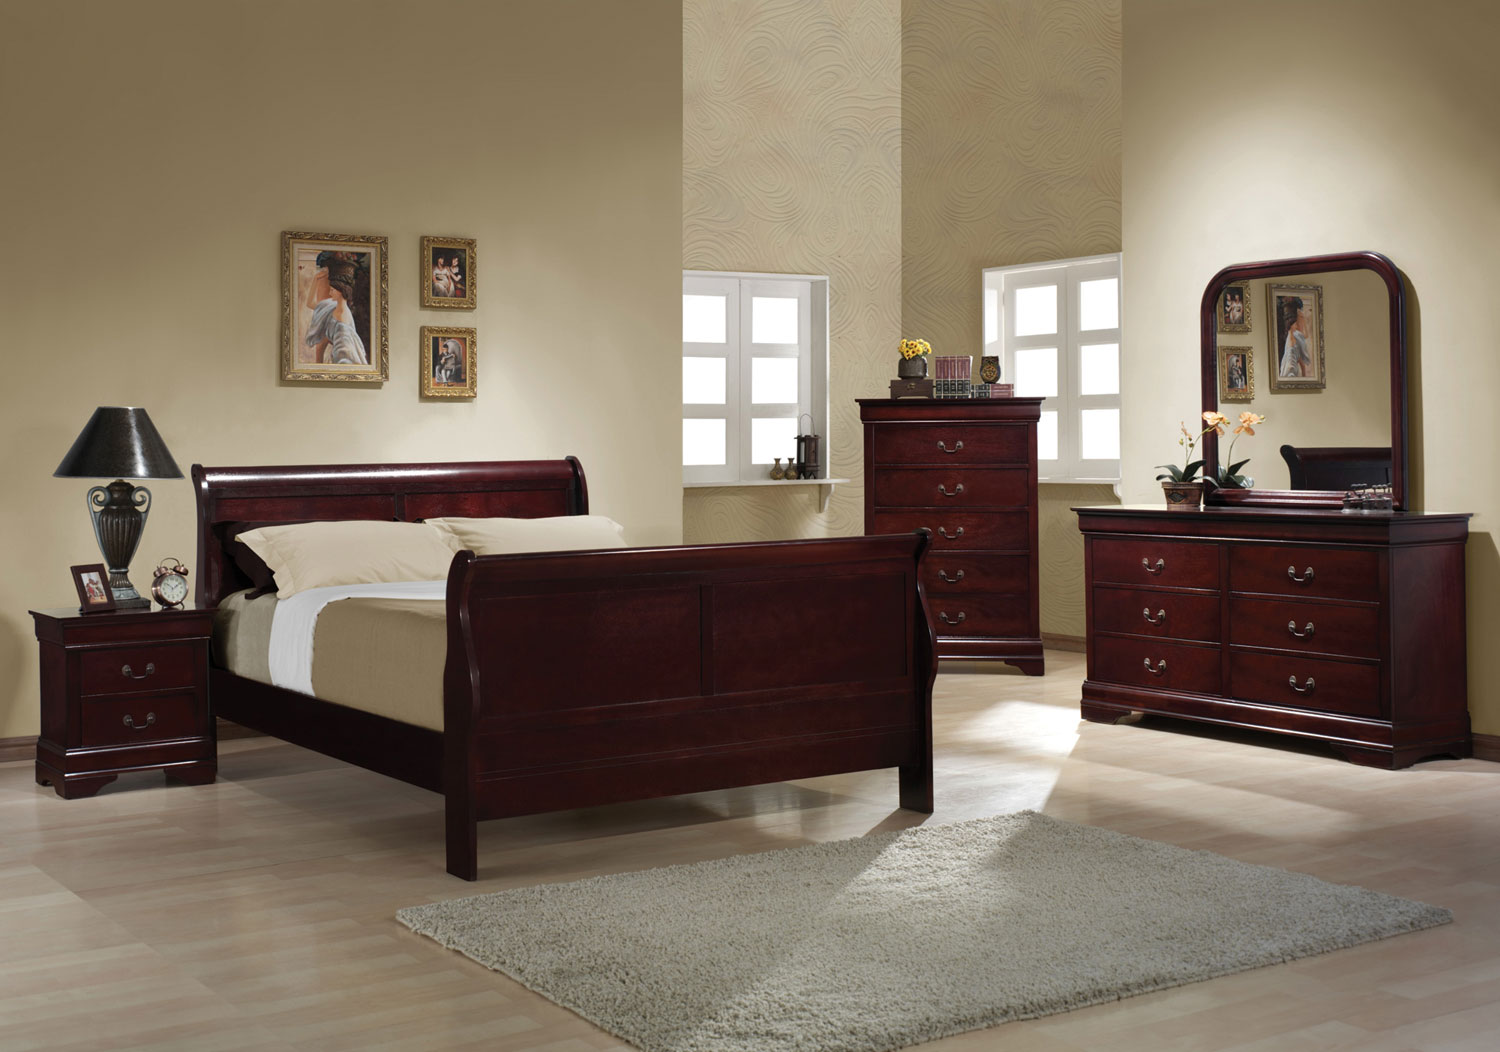 miramar leather sofa walnut brown cherry sleigh bedroom, louis philippe, 203971, queen bed ...